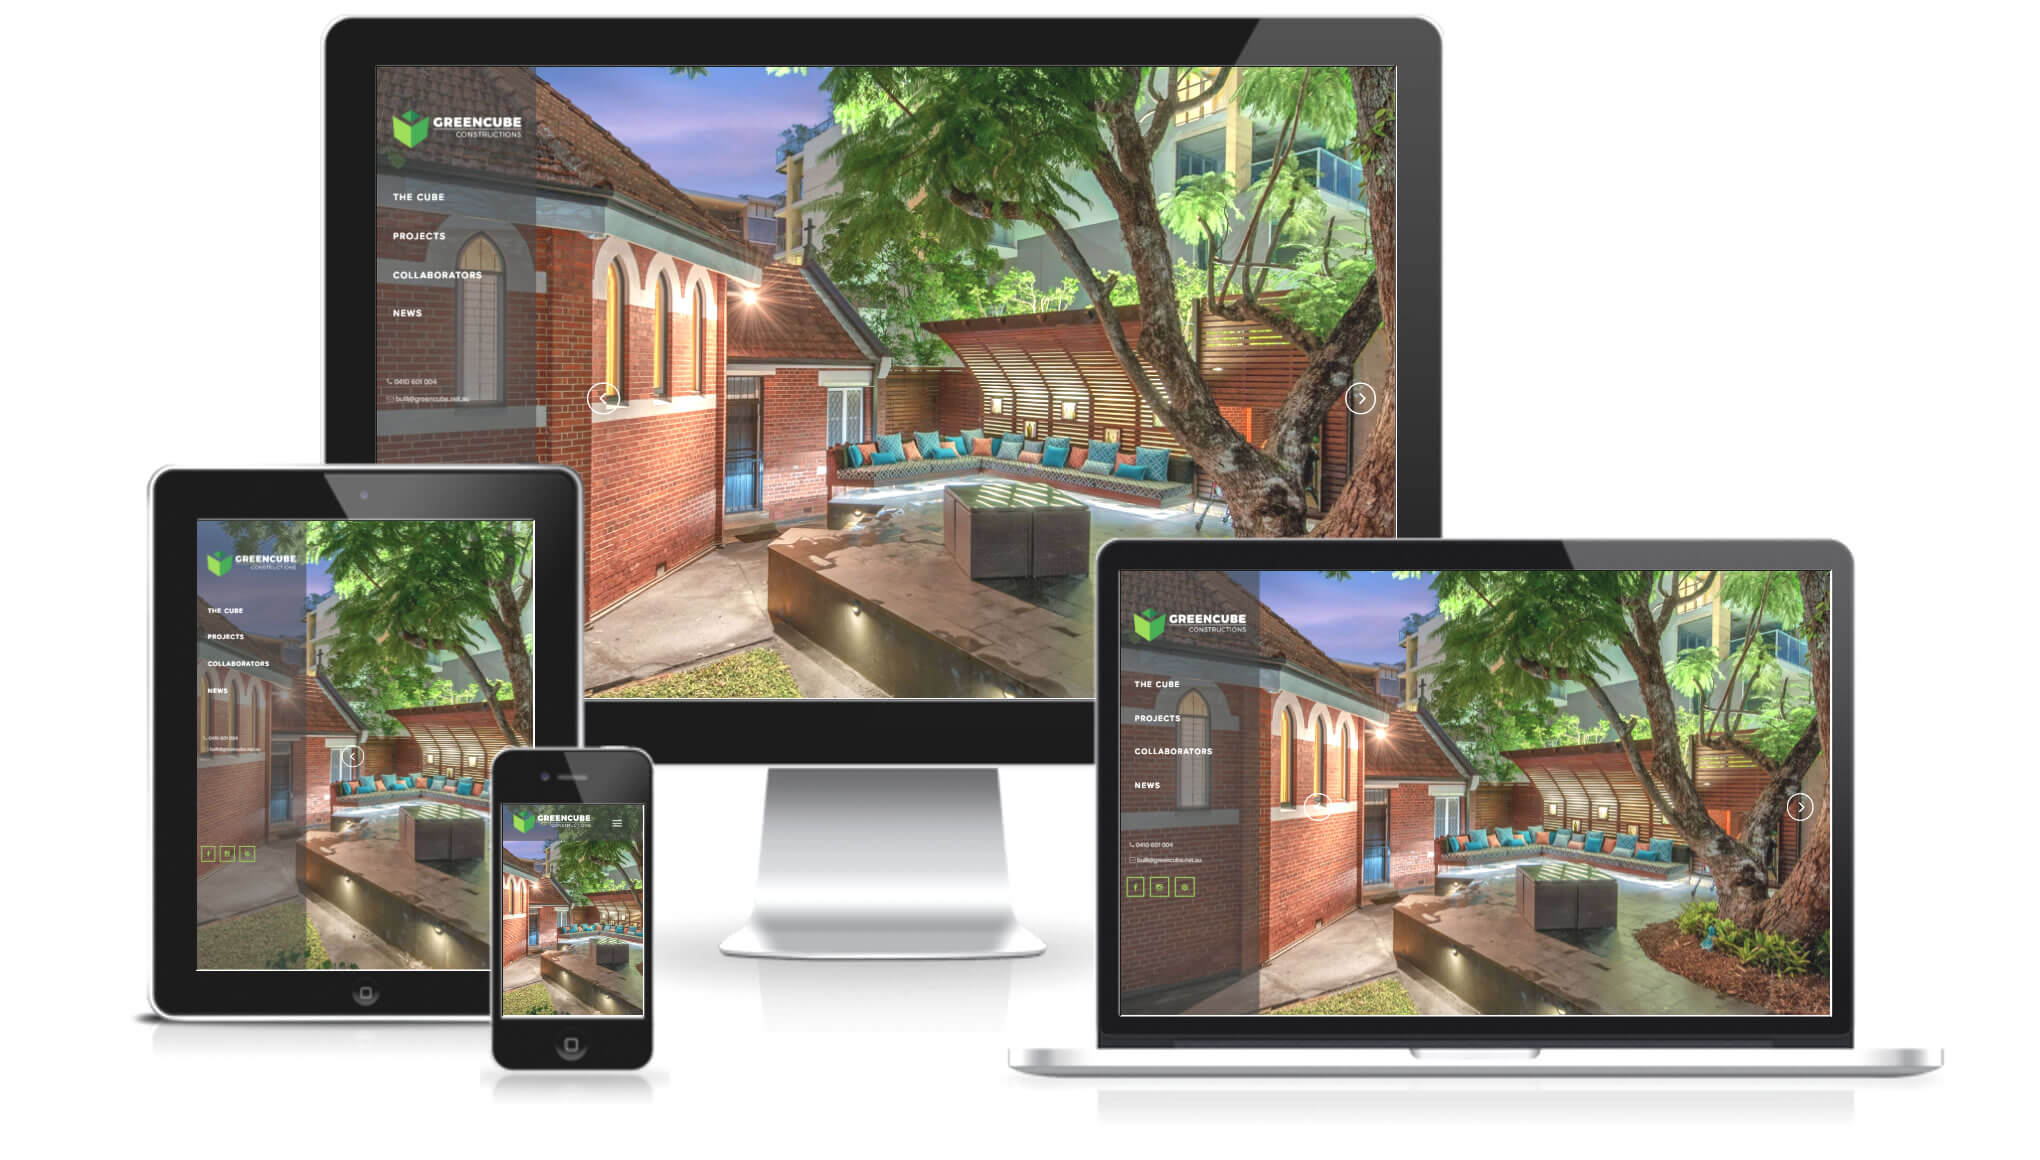 GreenCube Constructions Responsive Web Design